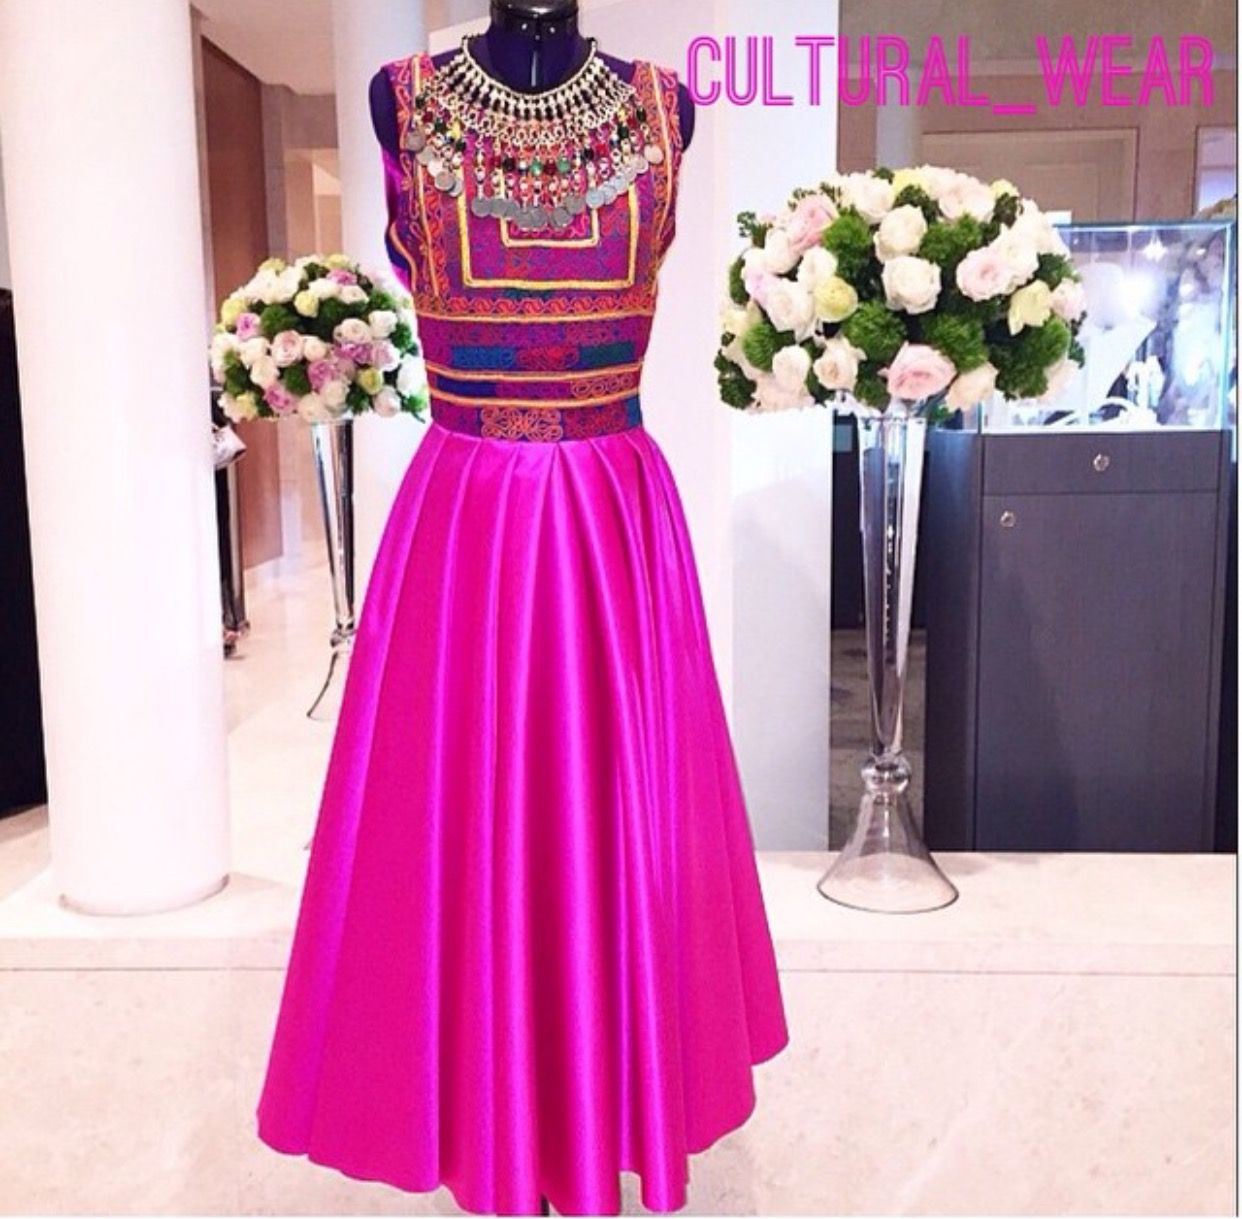 Bright pink satin evening afghan dress. Hand embroidery | FMP ...